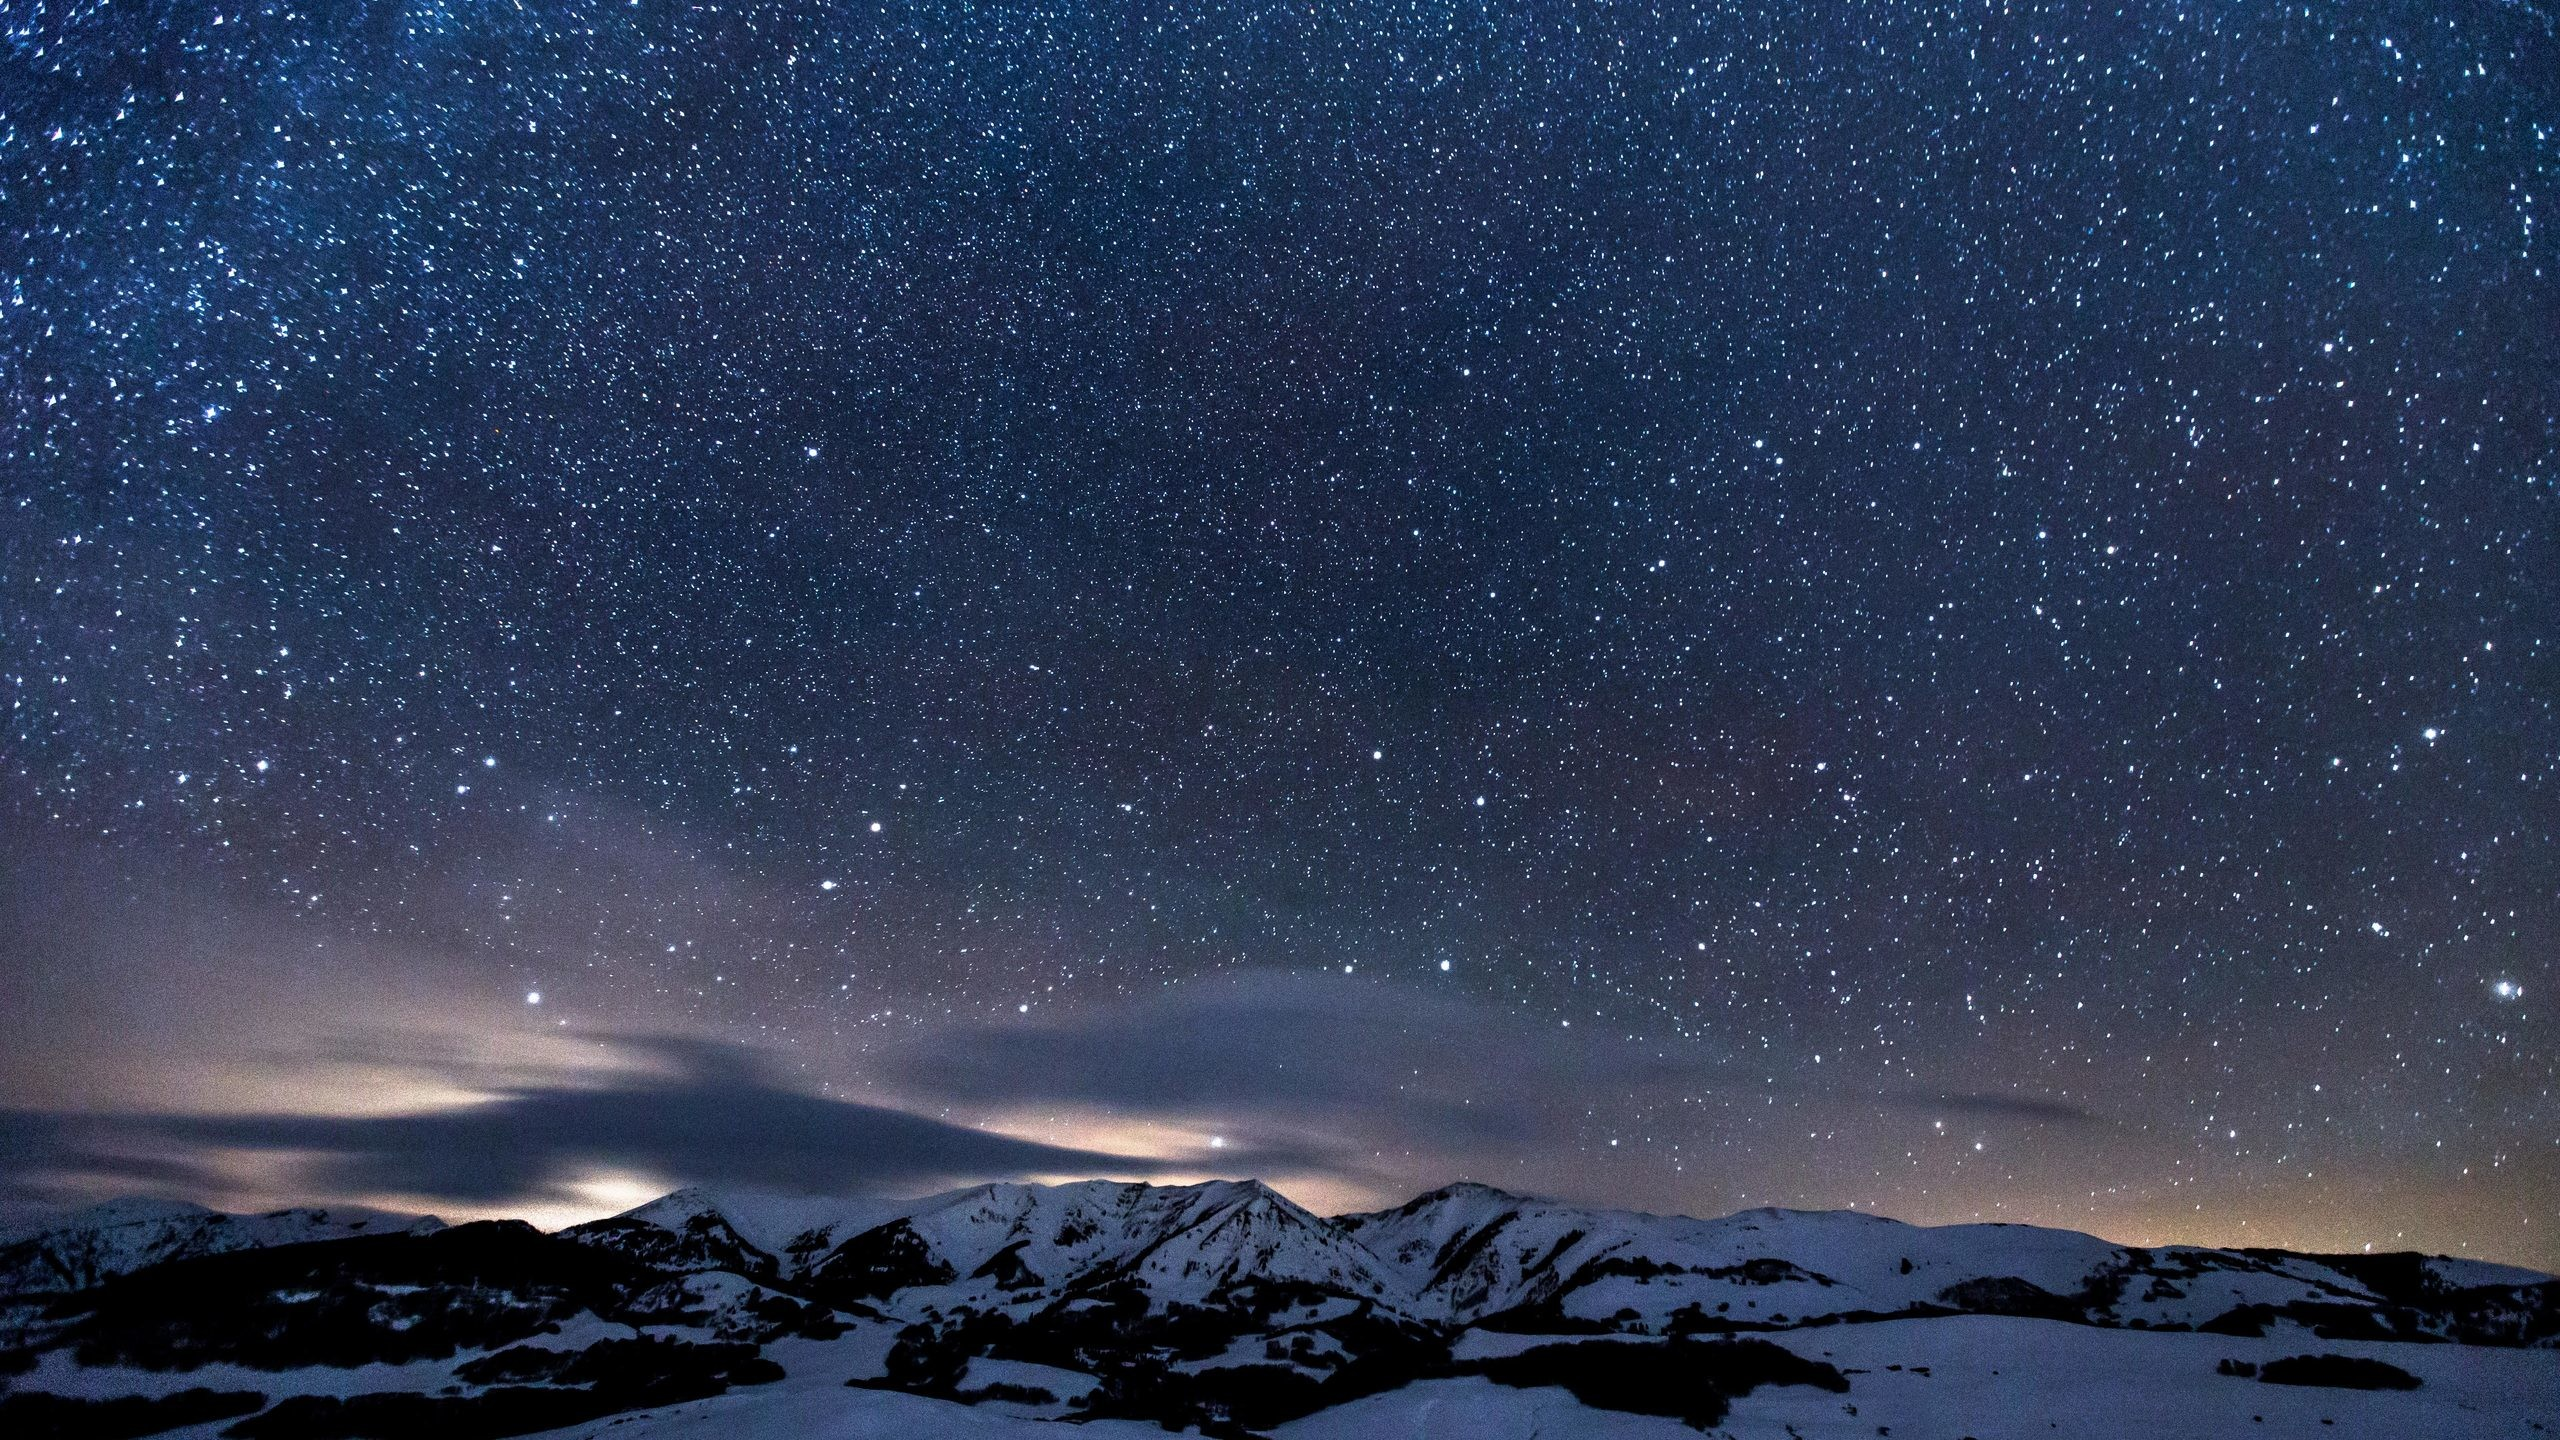 Res: 2560x1440, sky-full-of-stars-snowy-mountains-5k-s6.